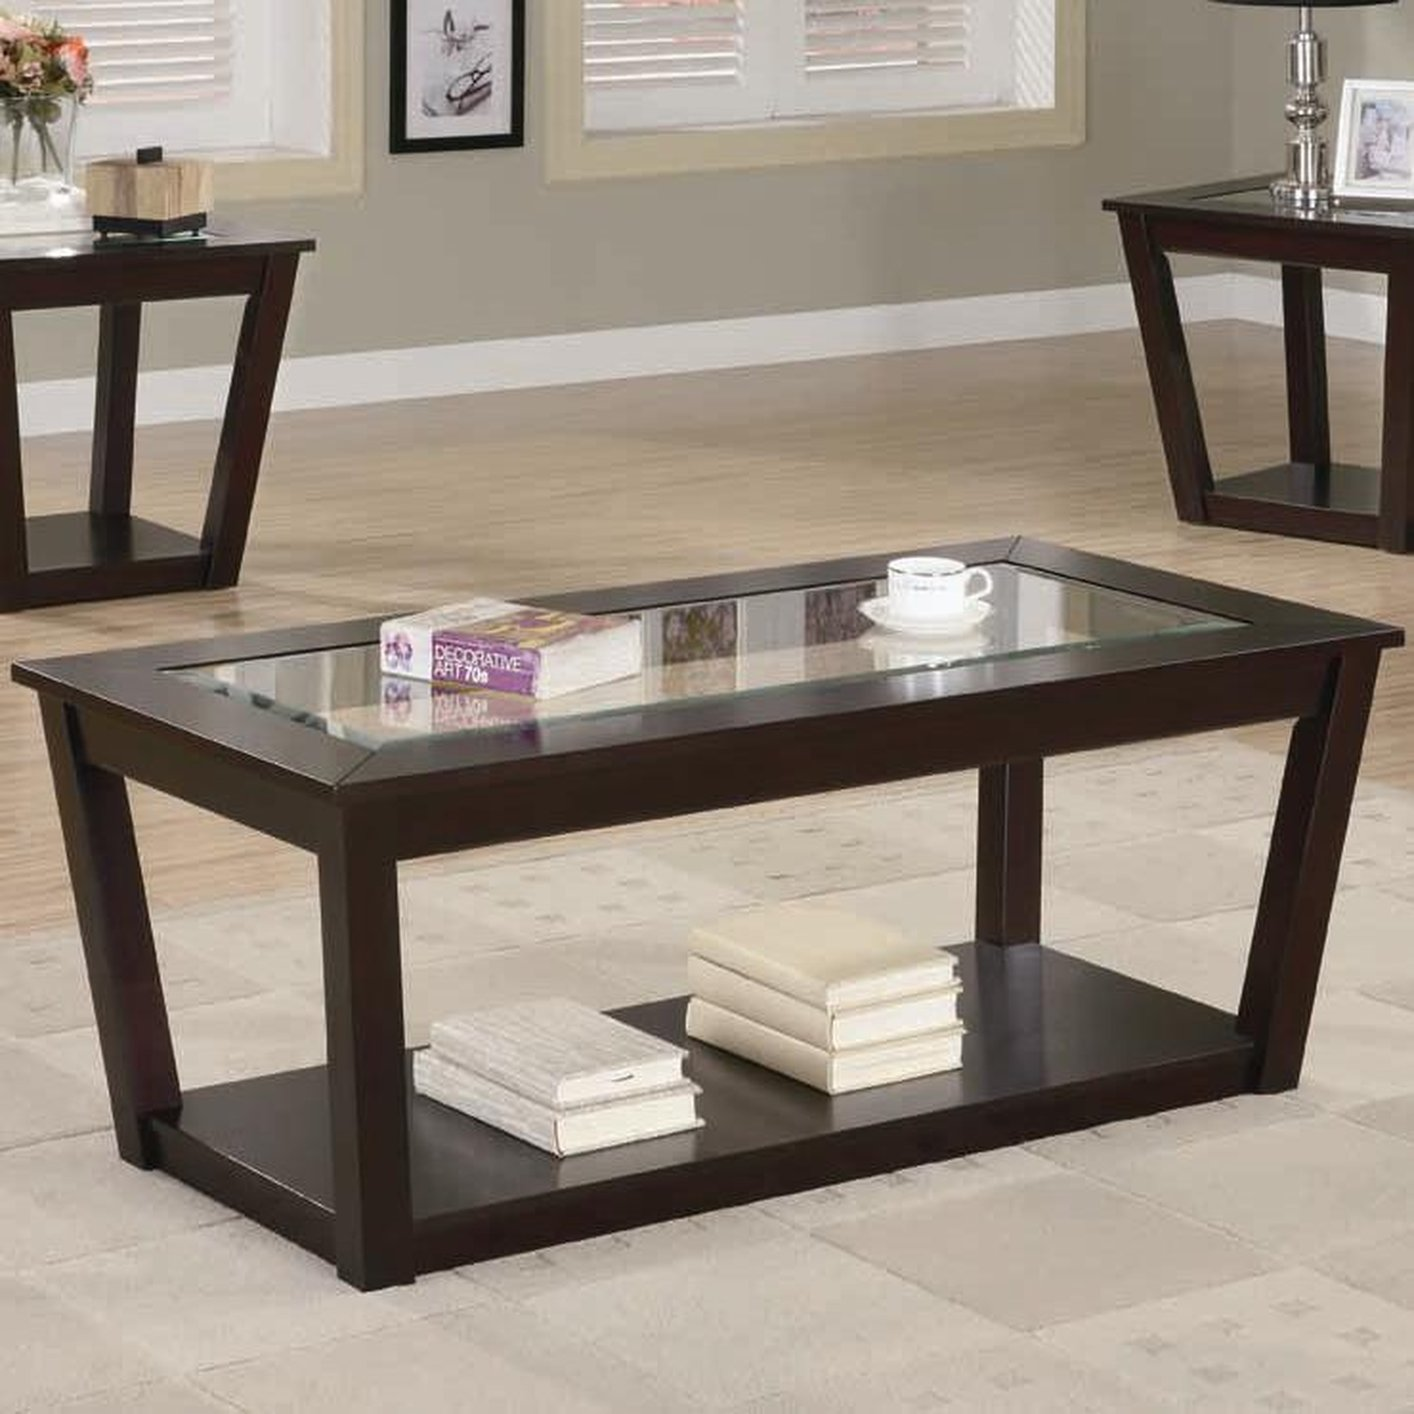 Coaster fenmore 701506 brown glass coffee table set steal a sofa furniture outlet los angeles ca Glass top coffee table set